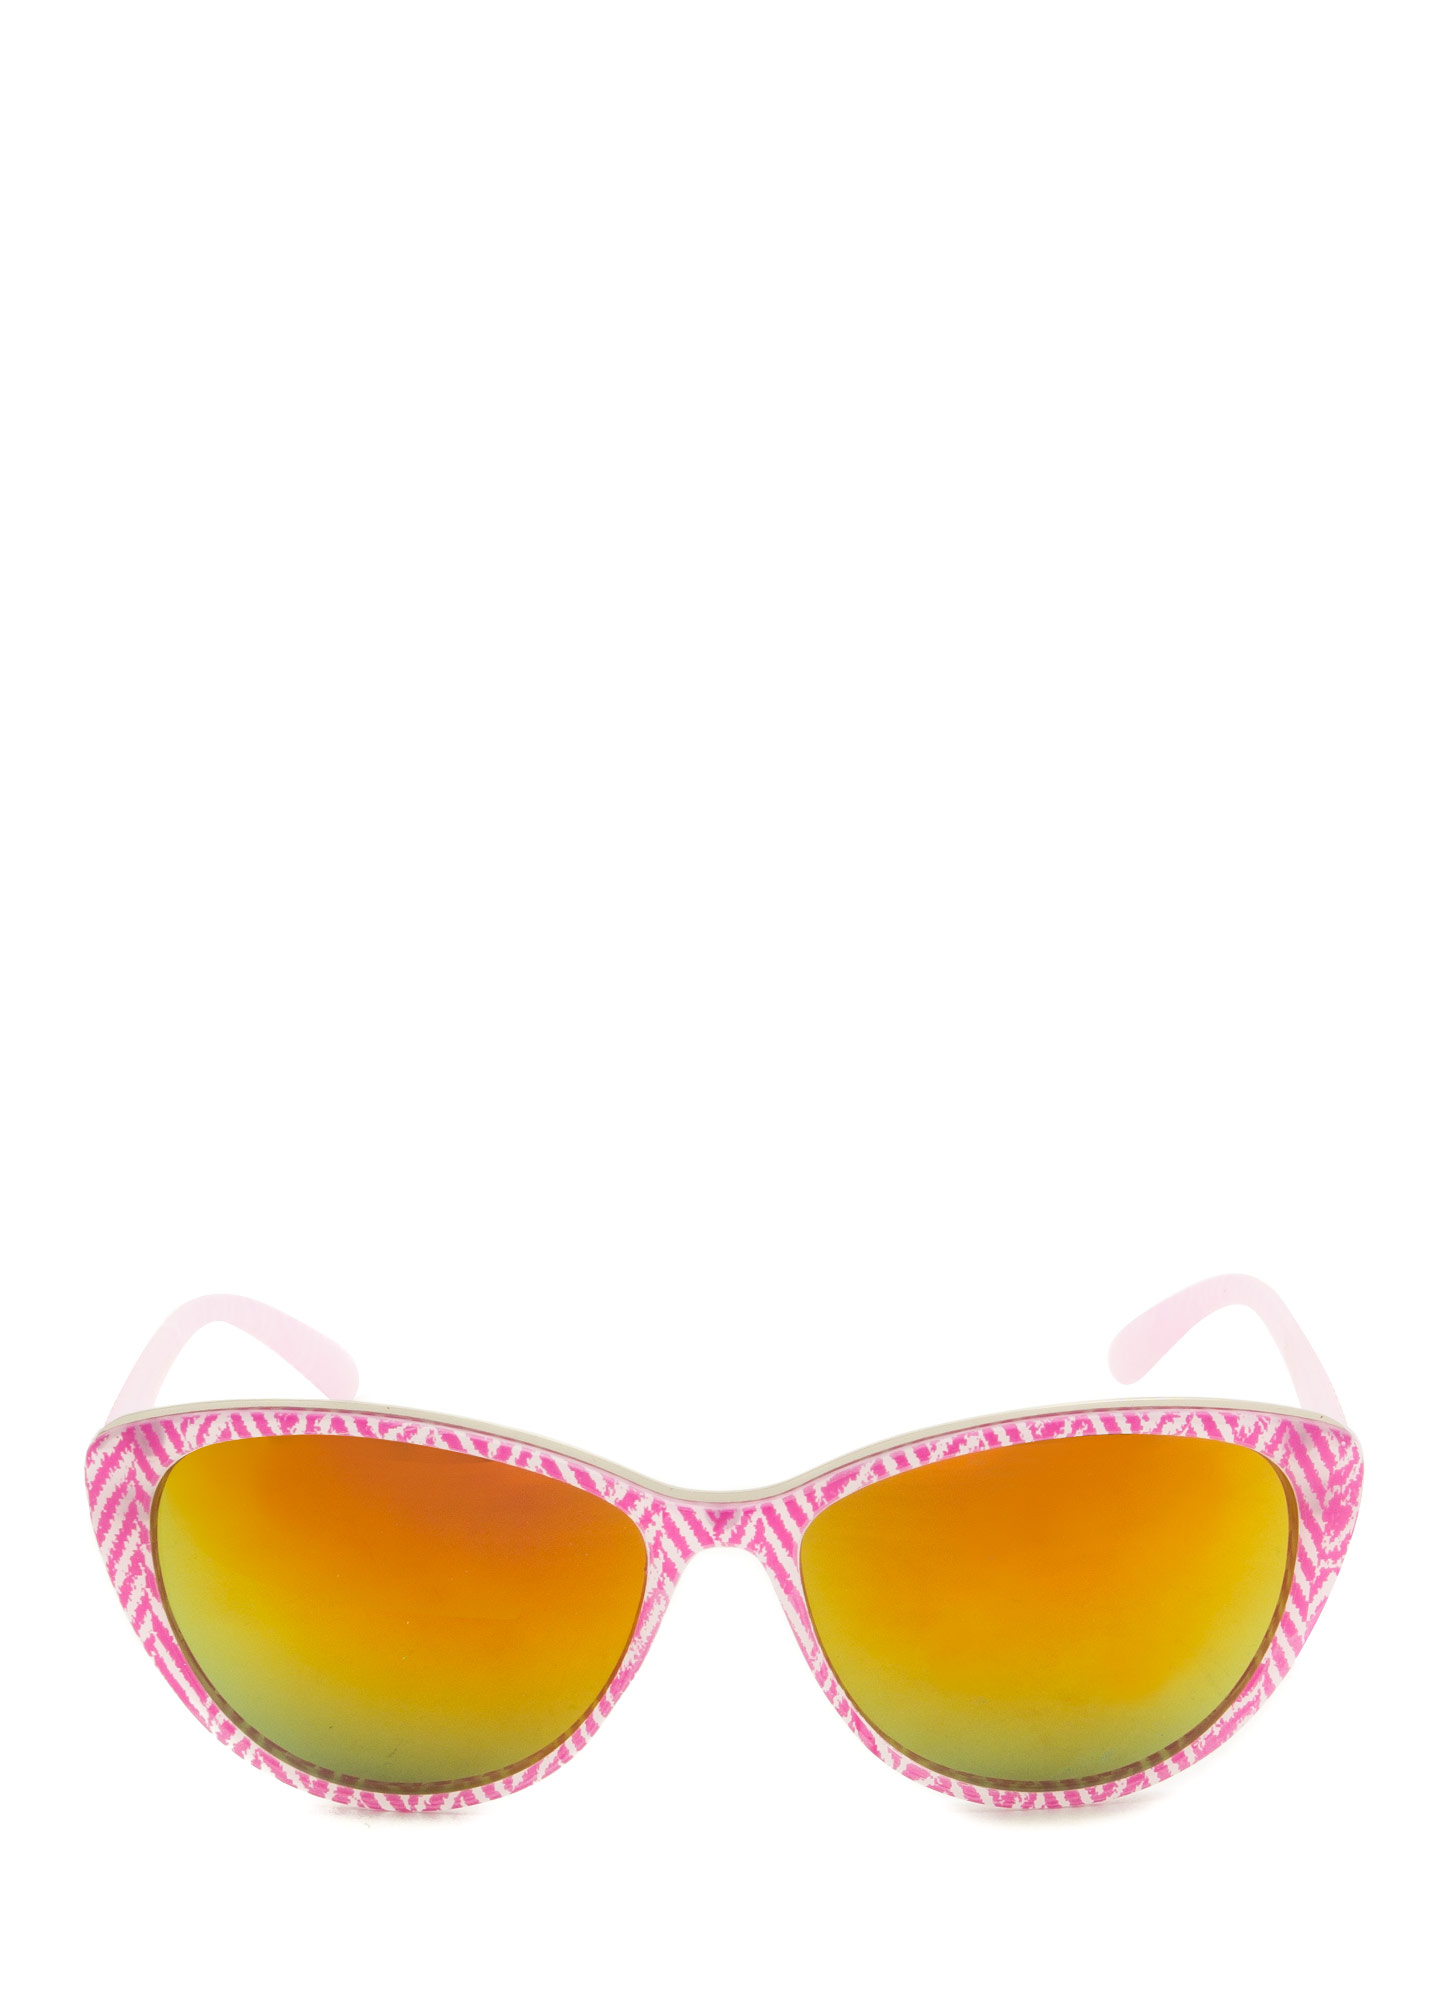 Pattern Play Reflective Sunglasses PINK